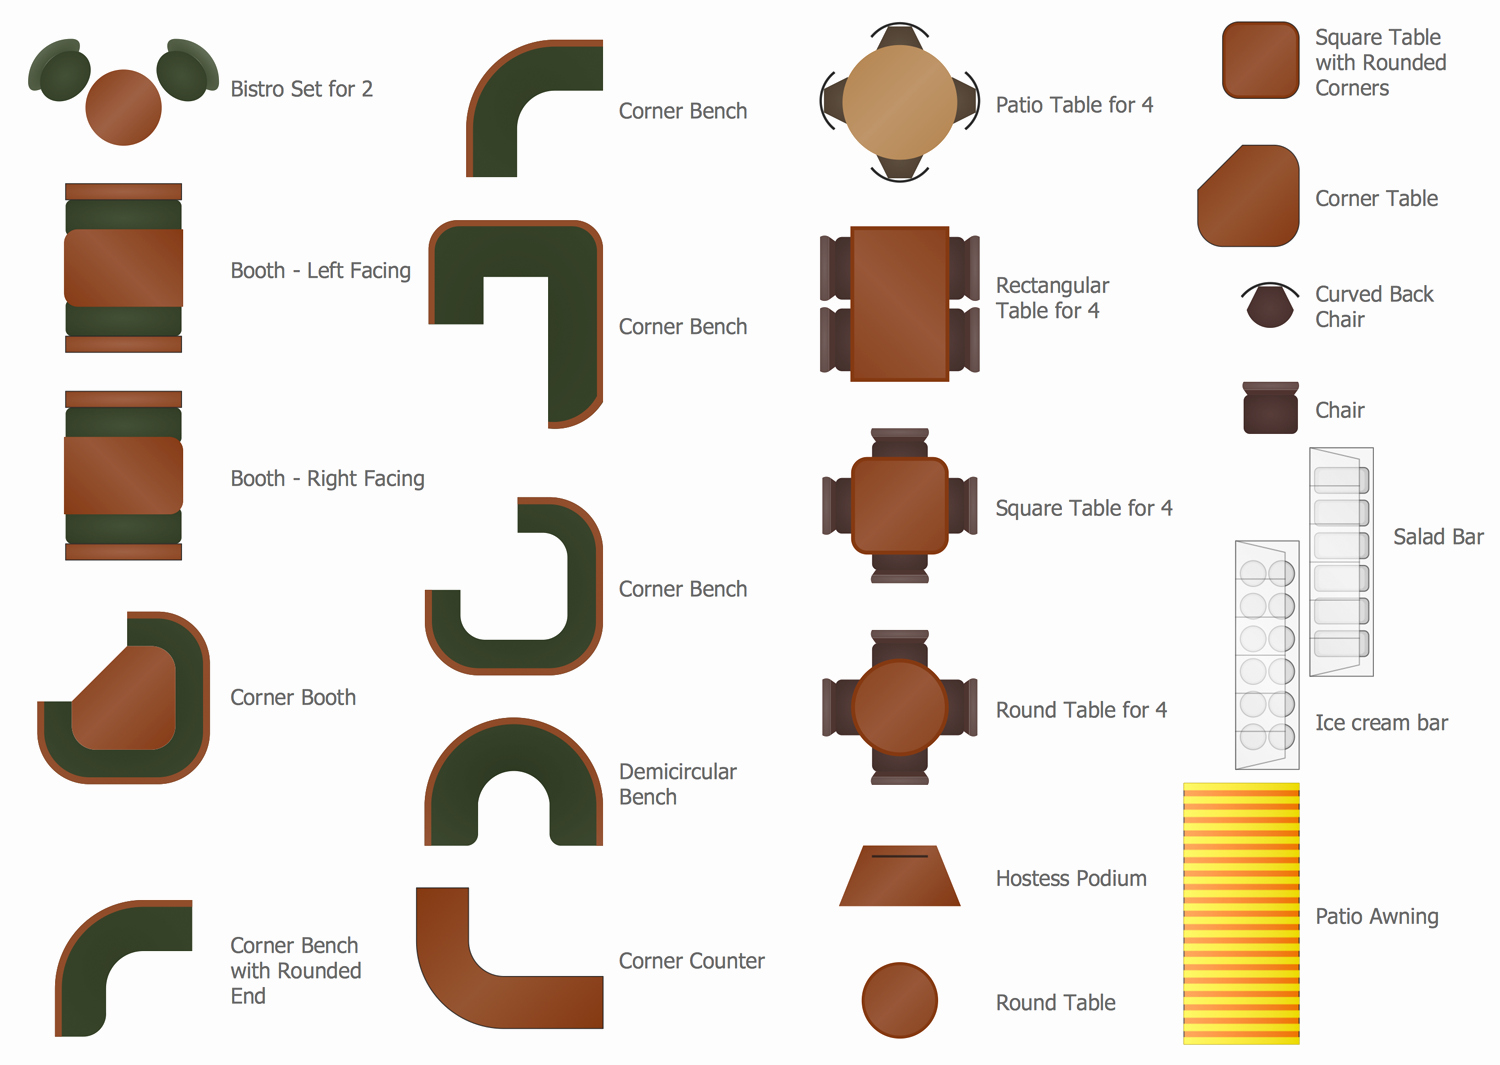 Restaurant Floor Plan Template Awesome Cafe and Restaurant Floor Plan solution